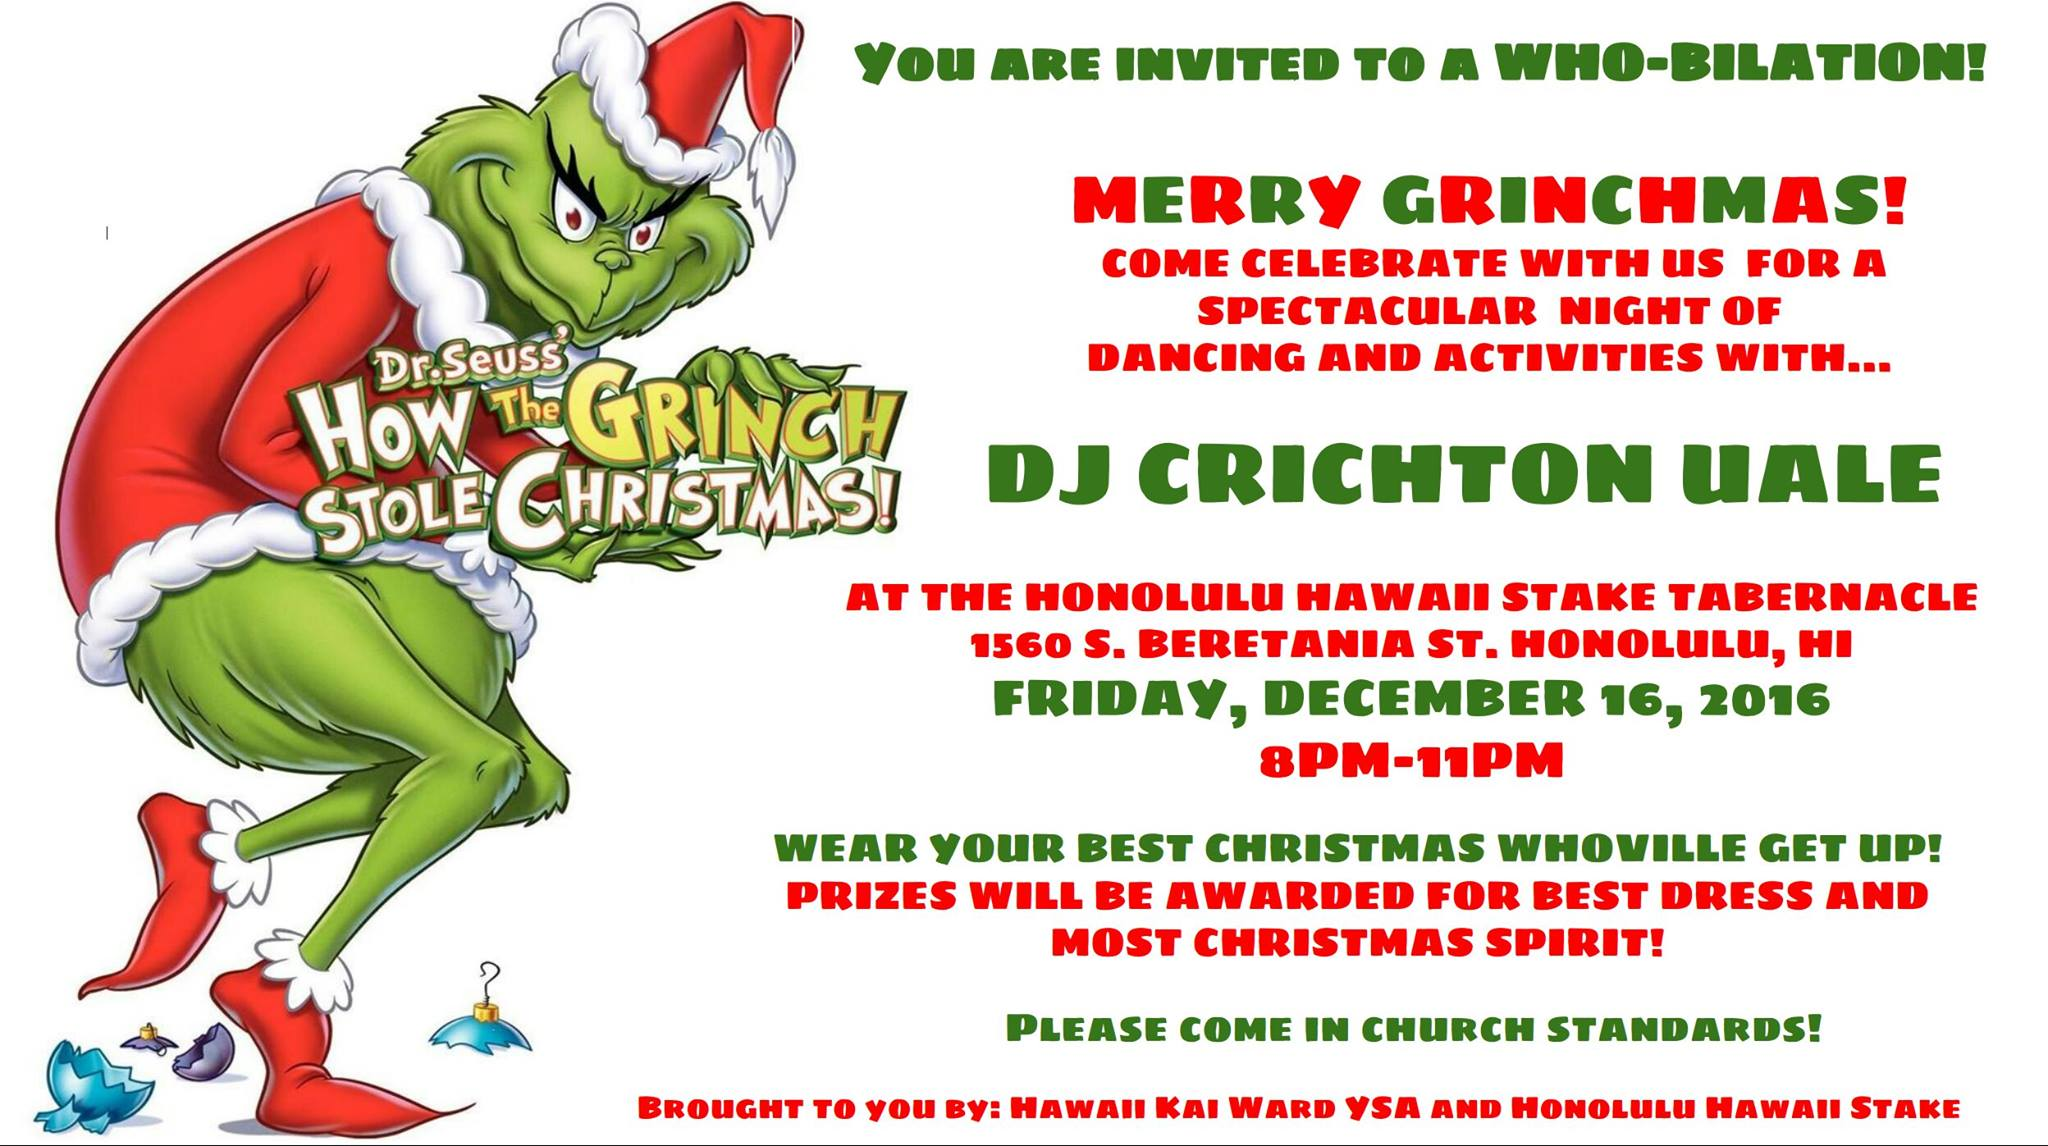 Christmas Event in Honolulu, Hawaii